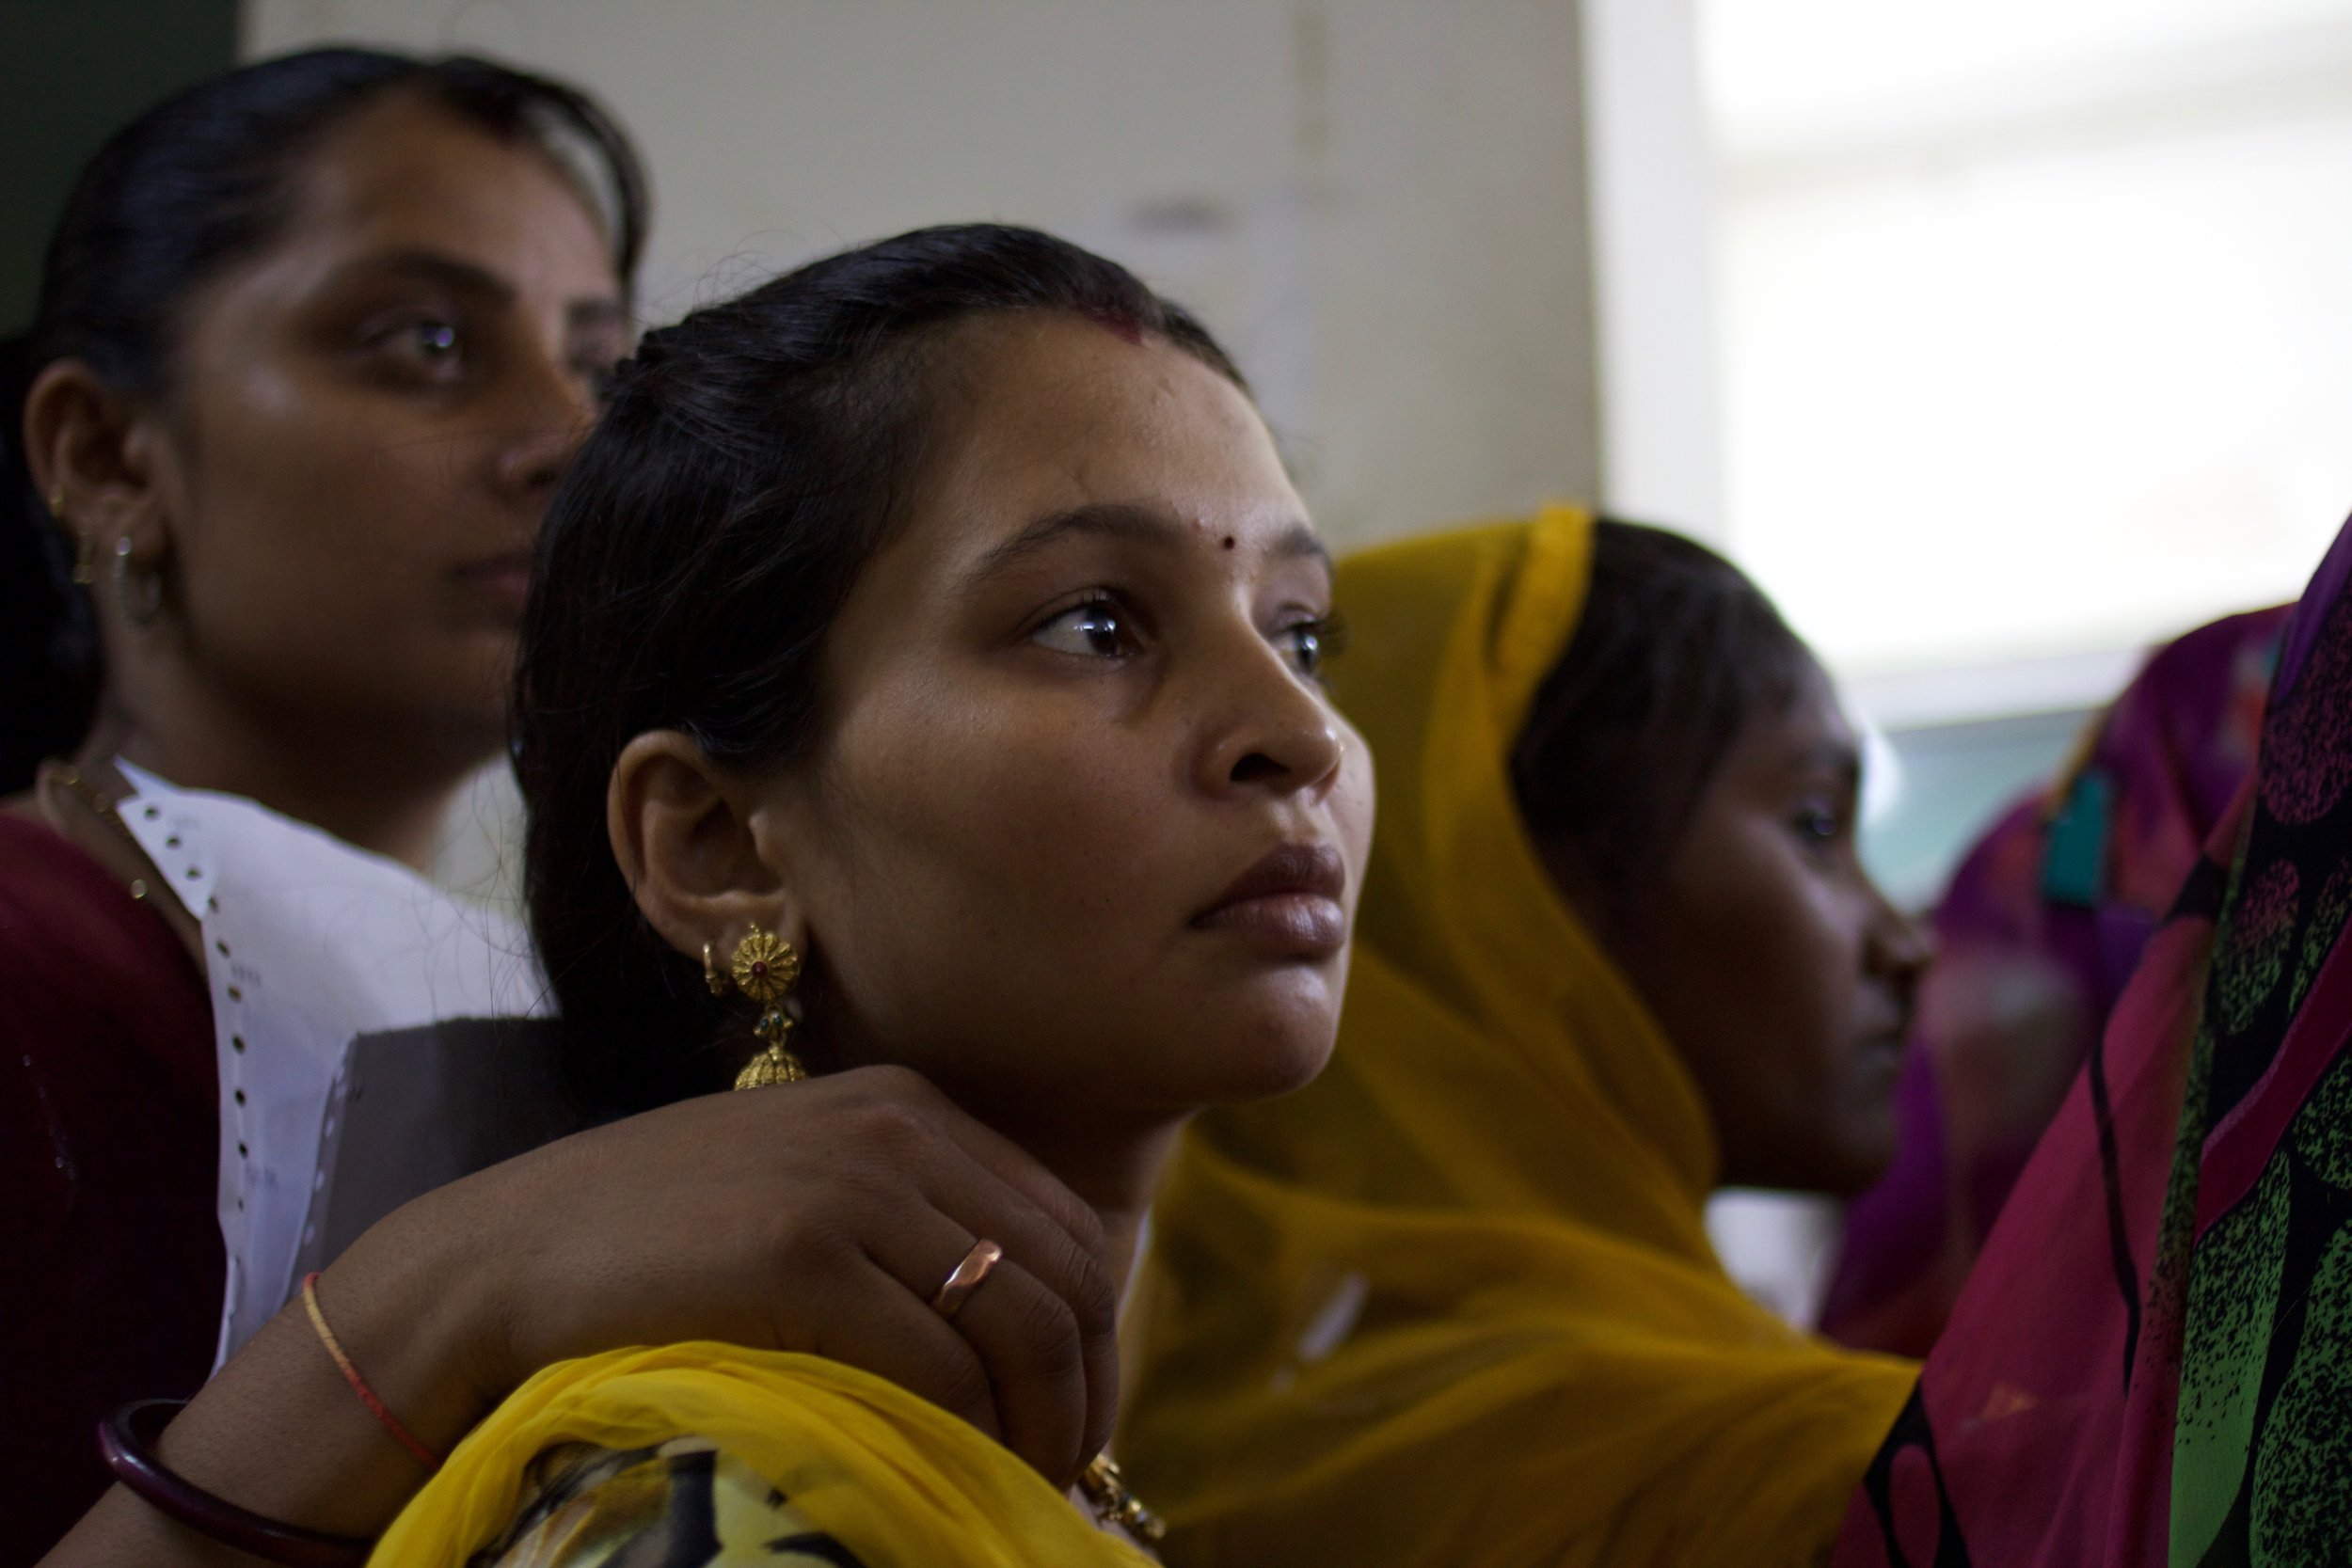 Pregnant patients who have come to Zanana Public Hospital for their regular check-up listen attentively for further instructions from the nursing staff.